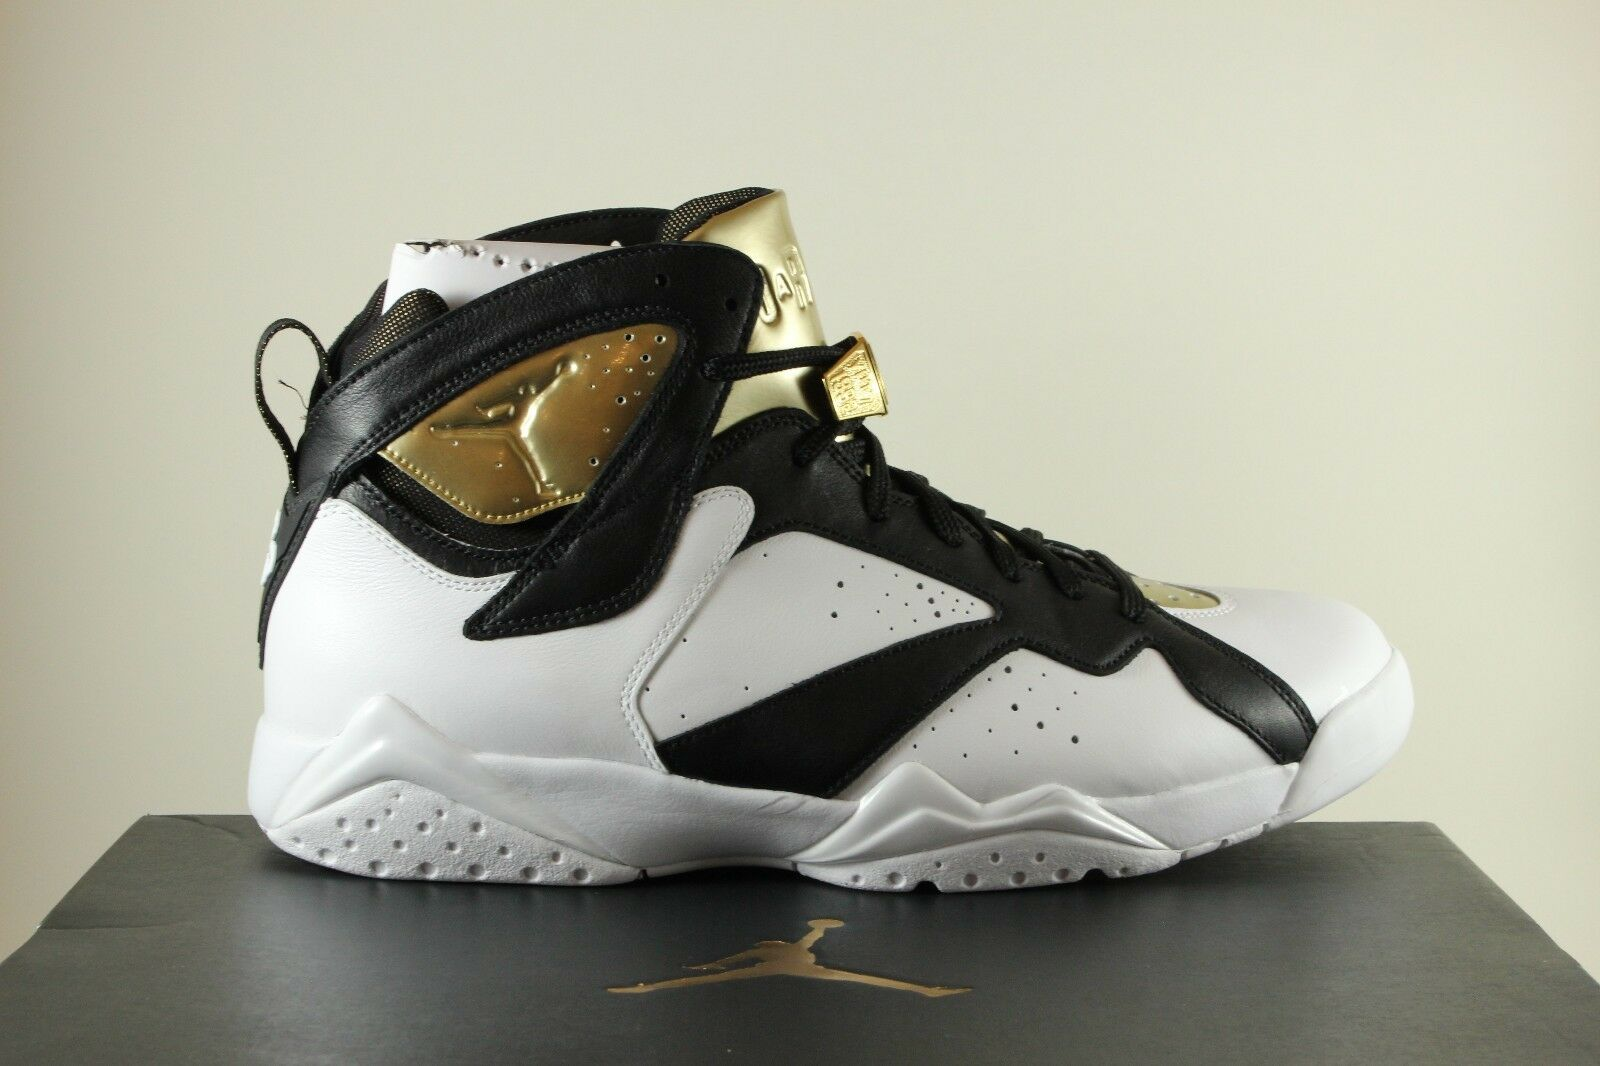 Air Jordan 7 Retro C&C Champagne 100% Authentic Uomo Size 11 Deadstock DS Champ